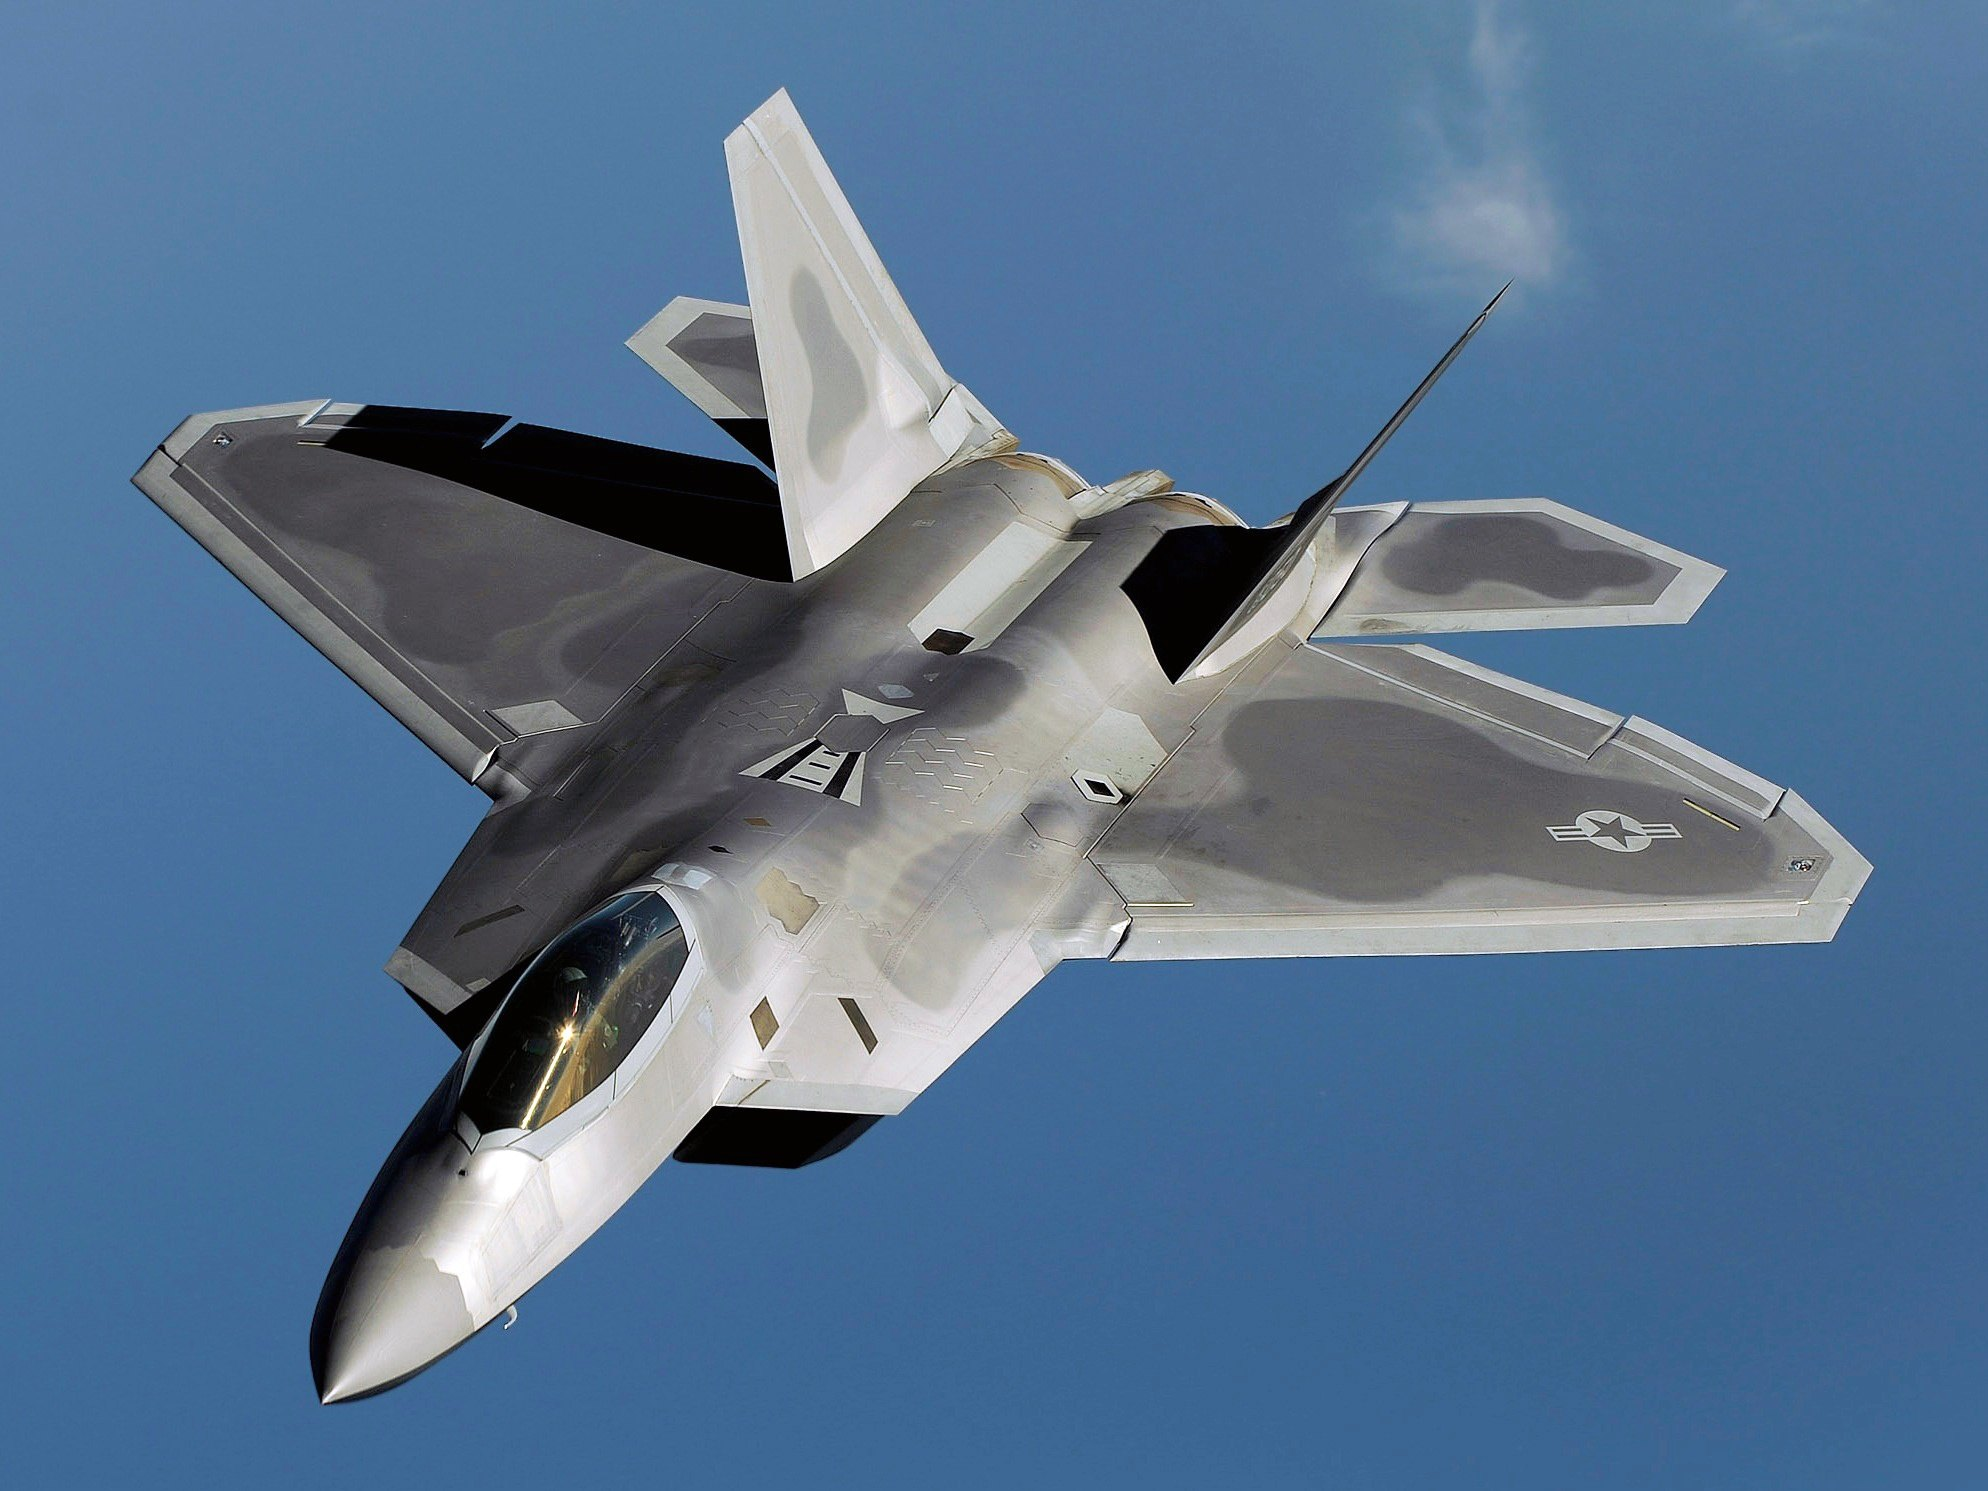 Is the Eurofighter Typhoon better than a F-22 and F-35? - Quora